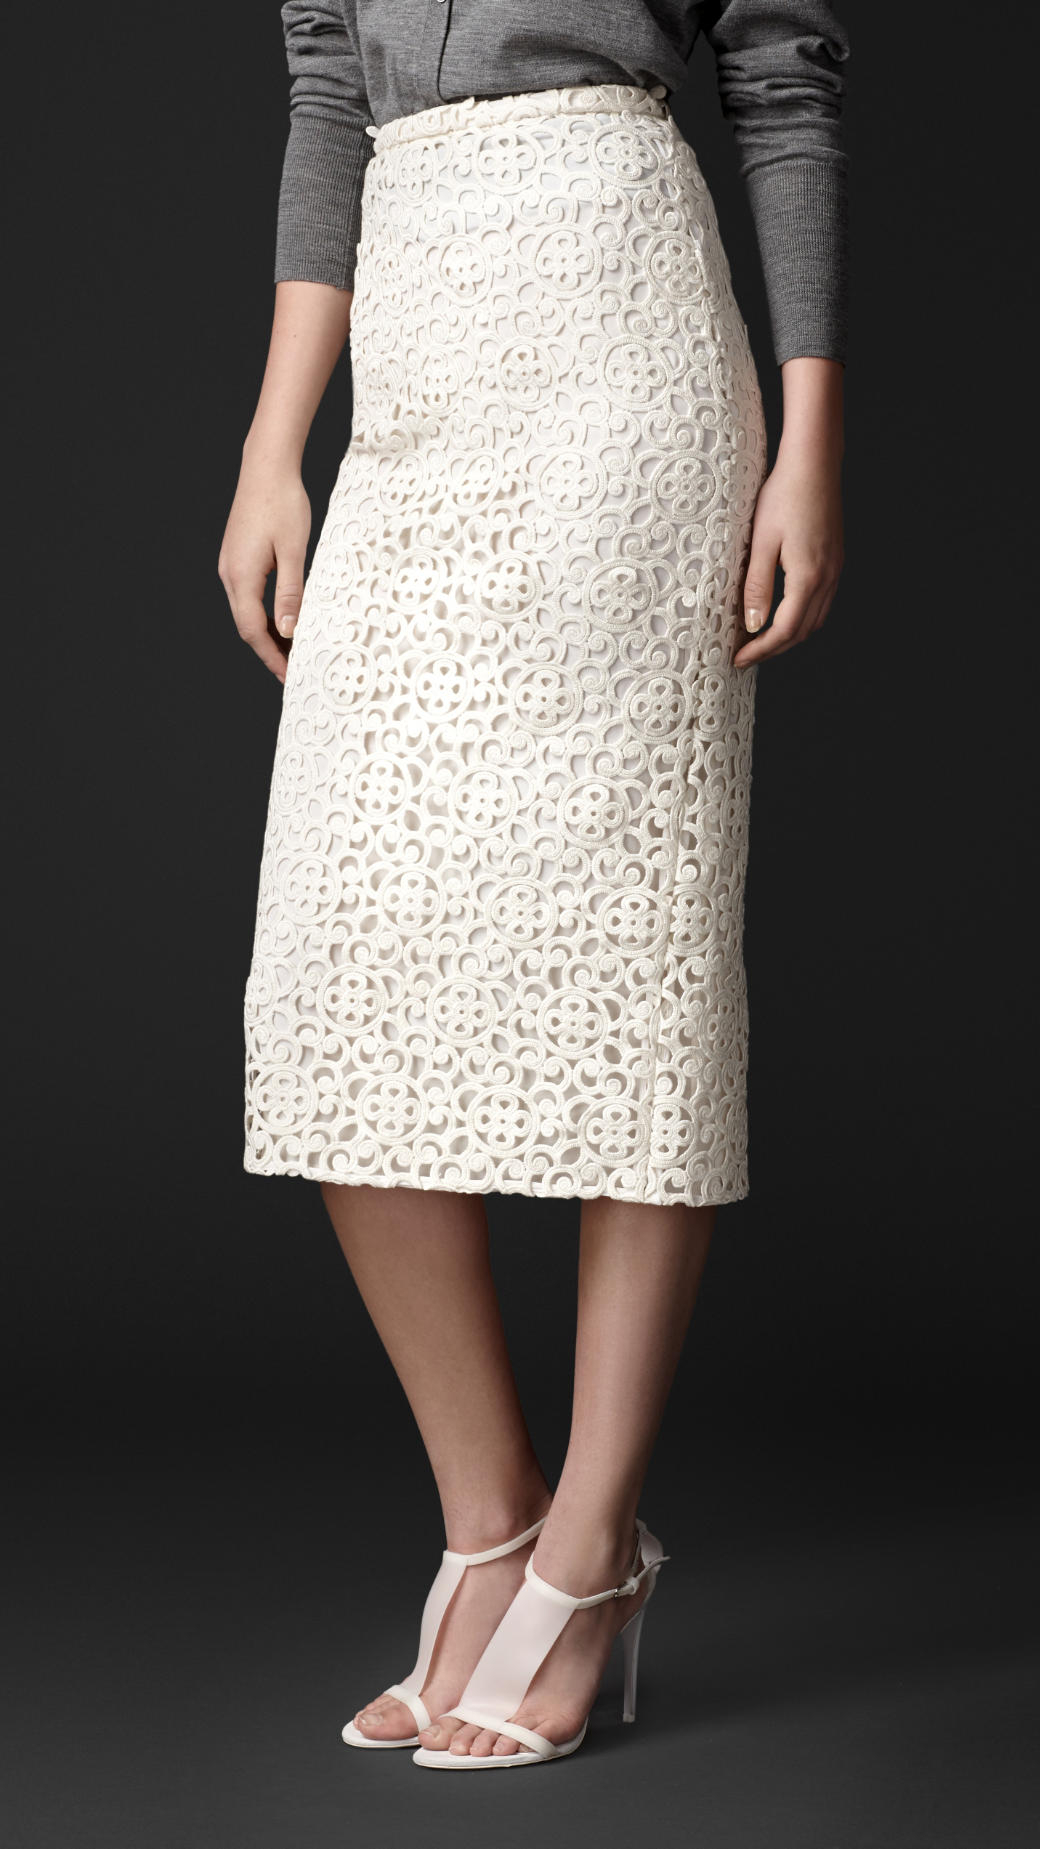 5919c7c9a2 Burberry Macramé Lace Pencil Skirt in White - Lyst